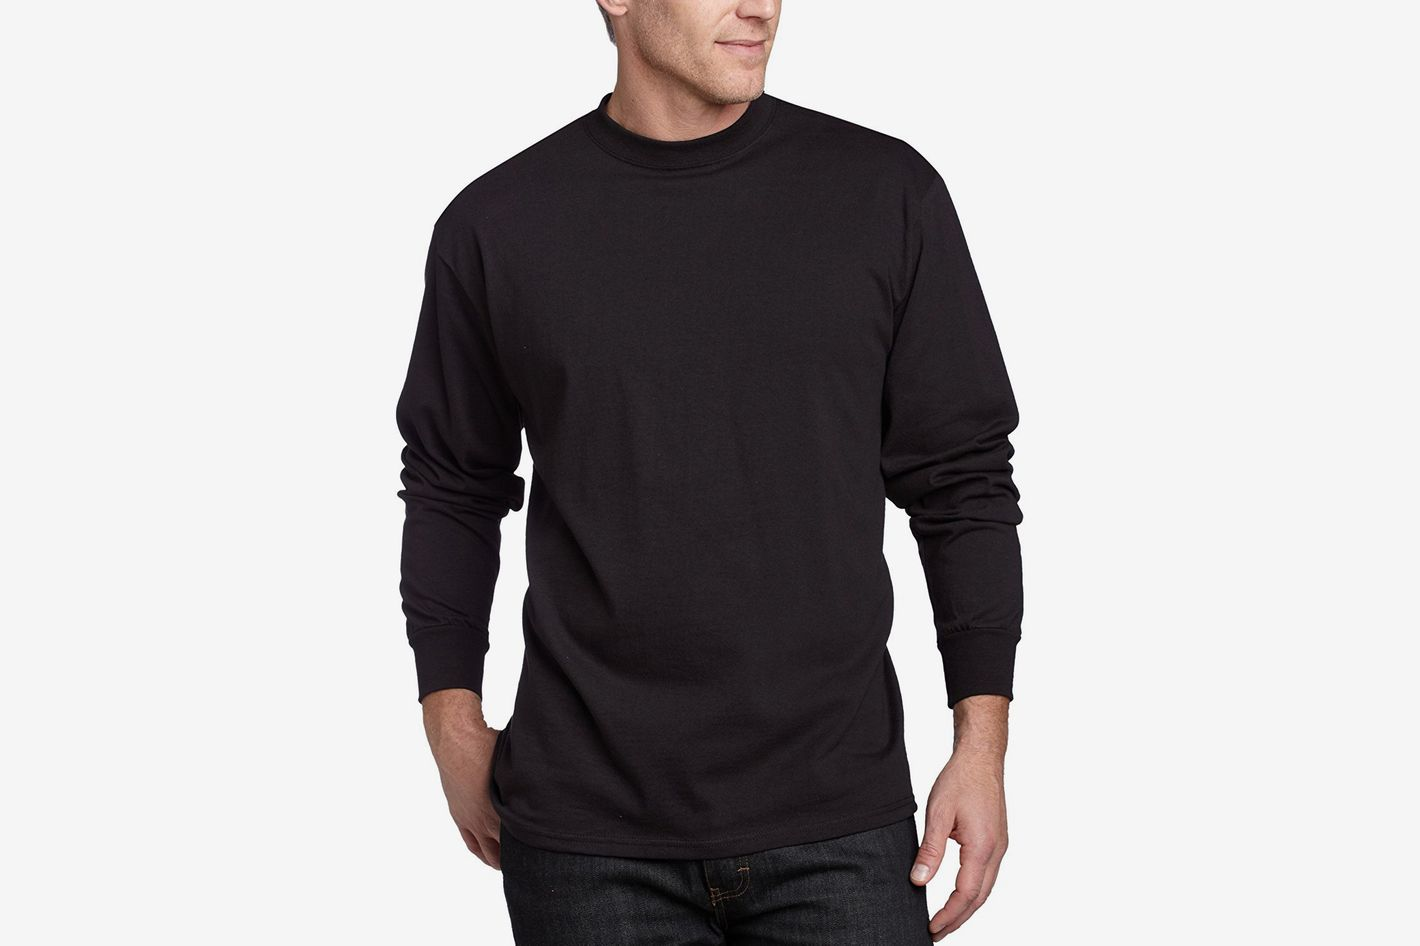 00d64ca6b6 MJ Soffe Men s Long-Sleeve Cotton T-Shirt. ""